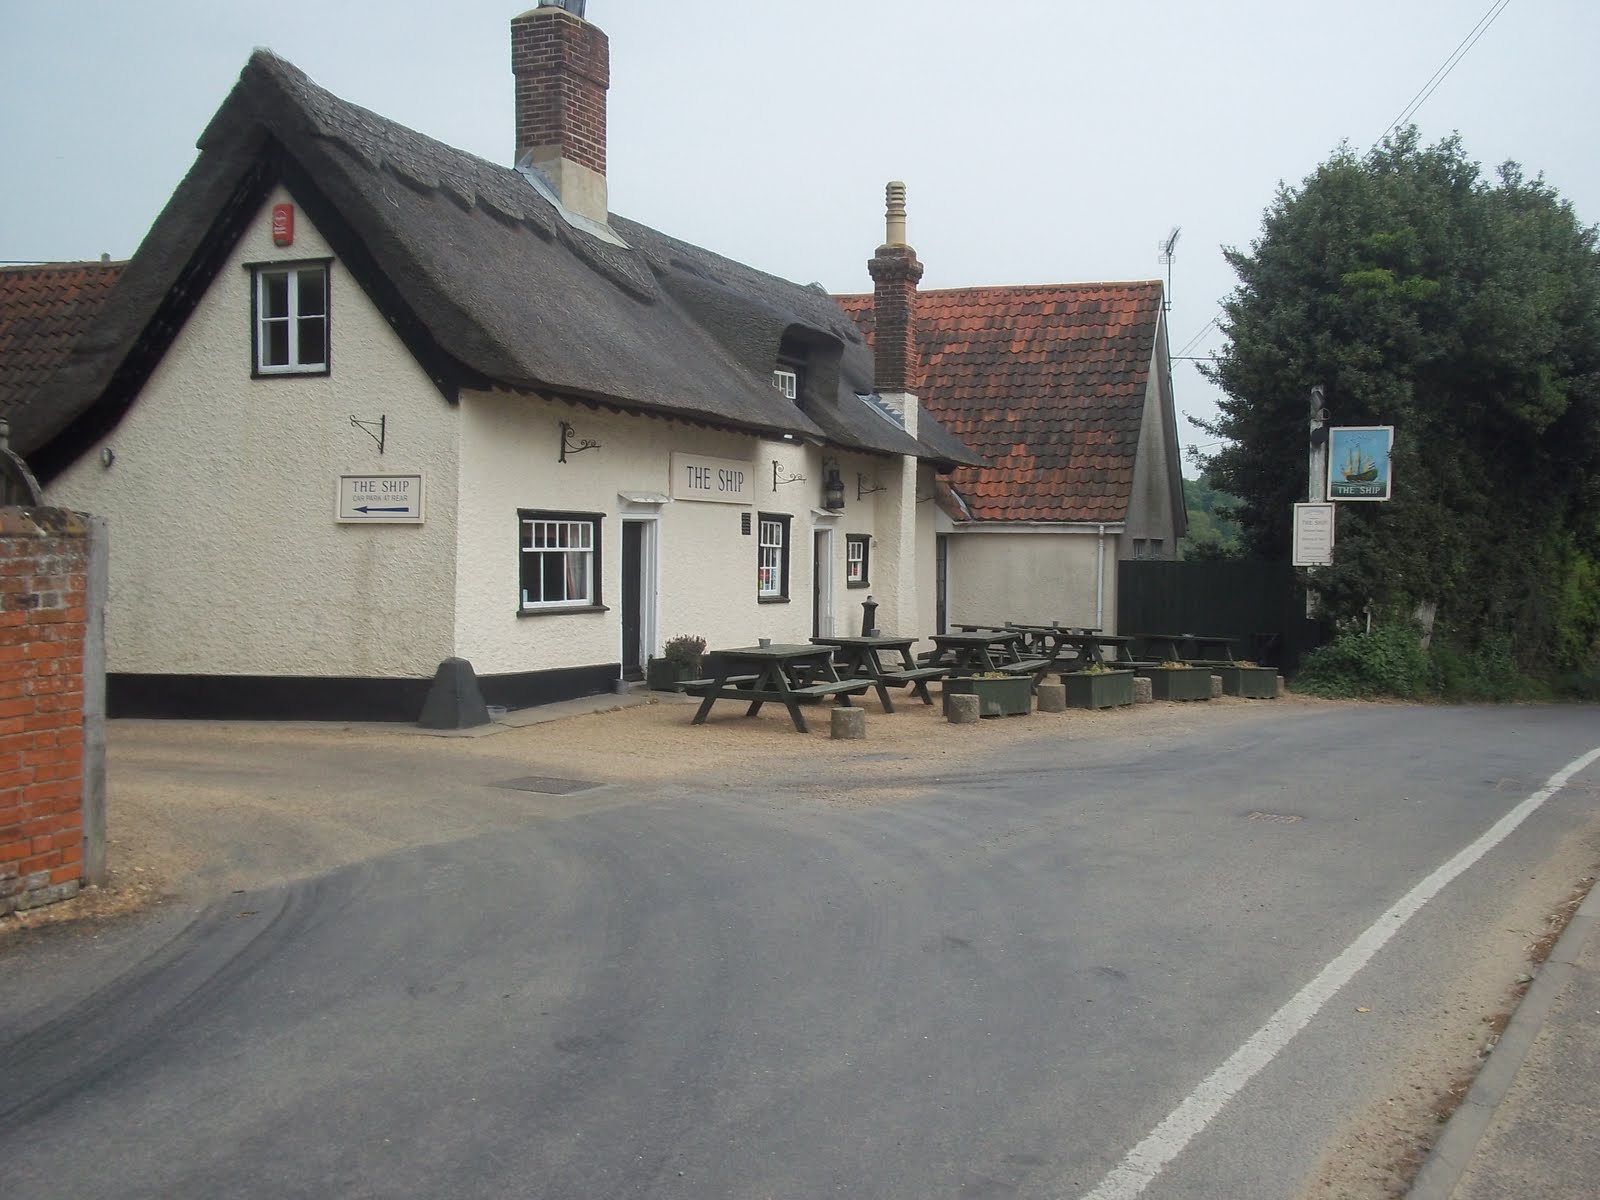 Broken Trails: THE SHIP INN, LEVINGTON, SUFFOLK